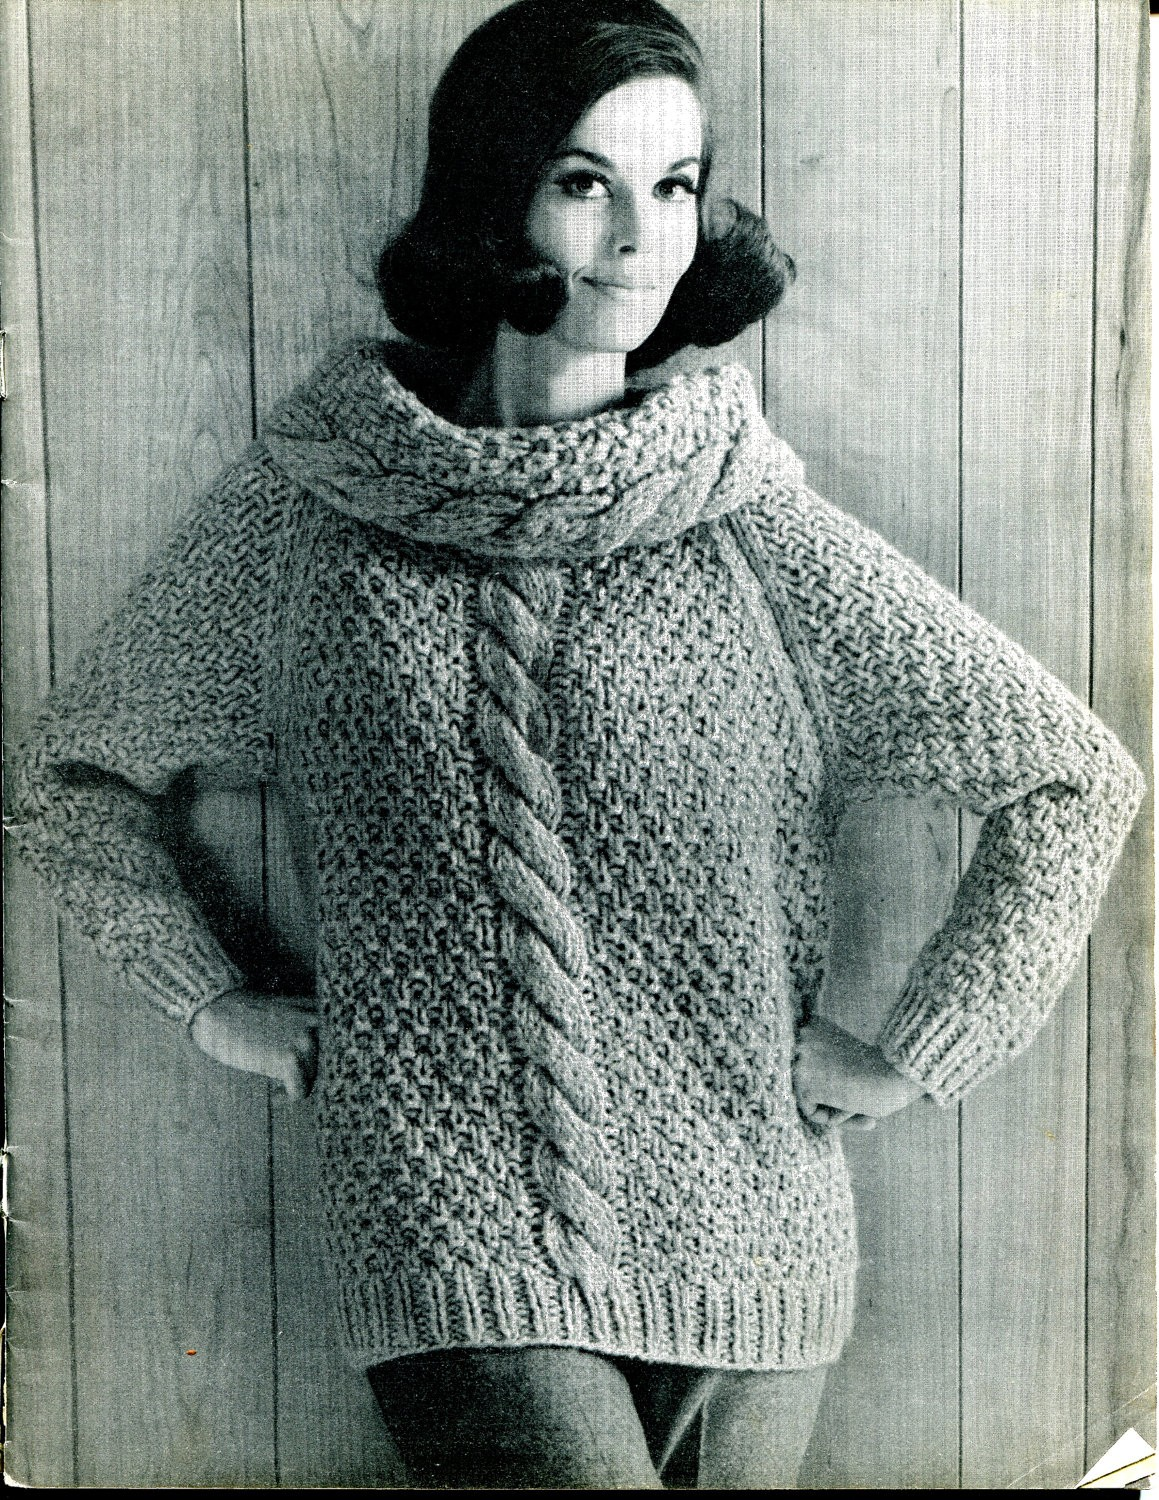 Chunky Knit Jumper Pattern : Cable Knit Sweater Patterns A Knitting Blog